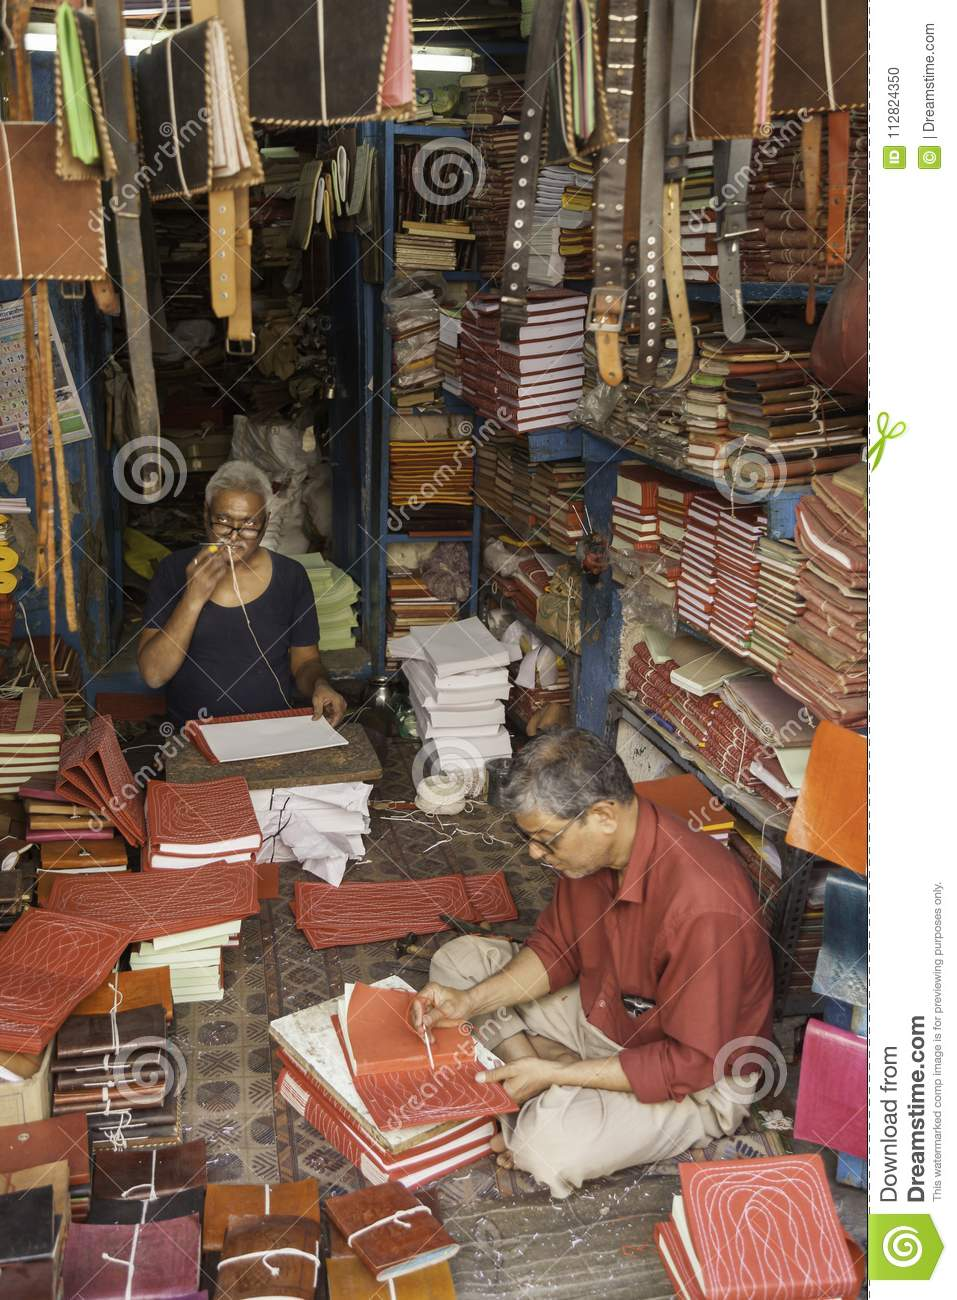 Two Men at Work in Their Bookshop